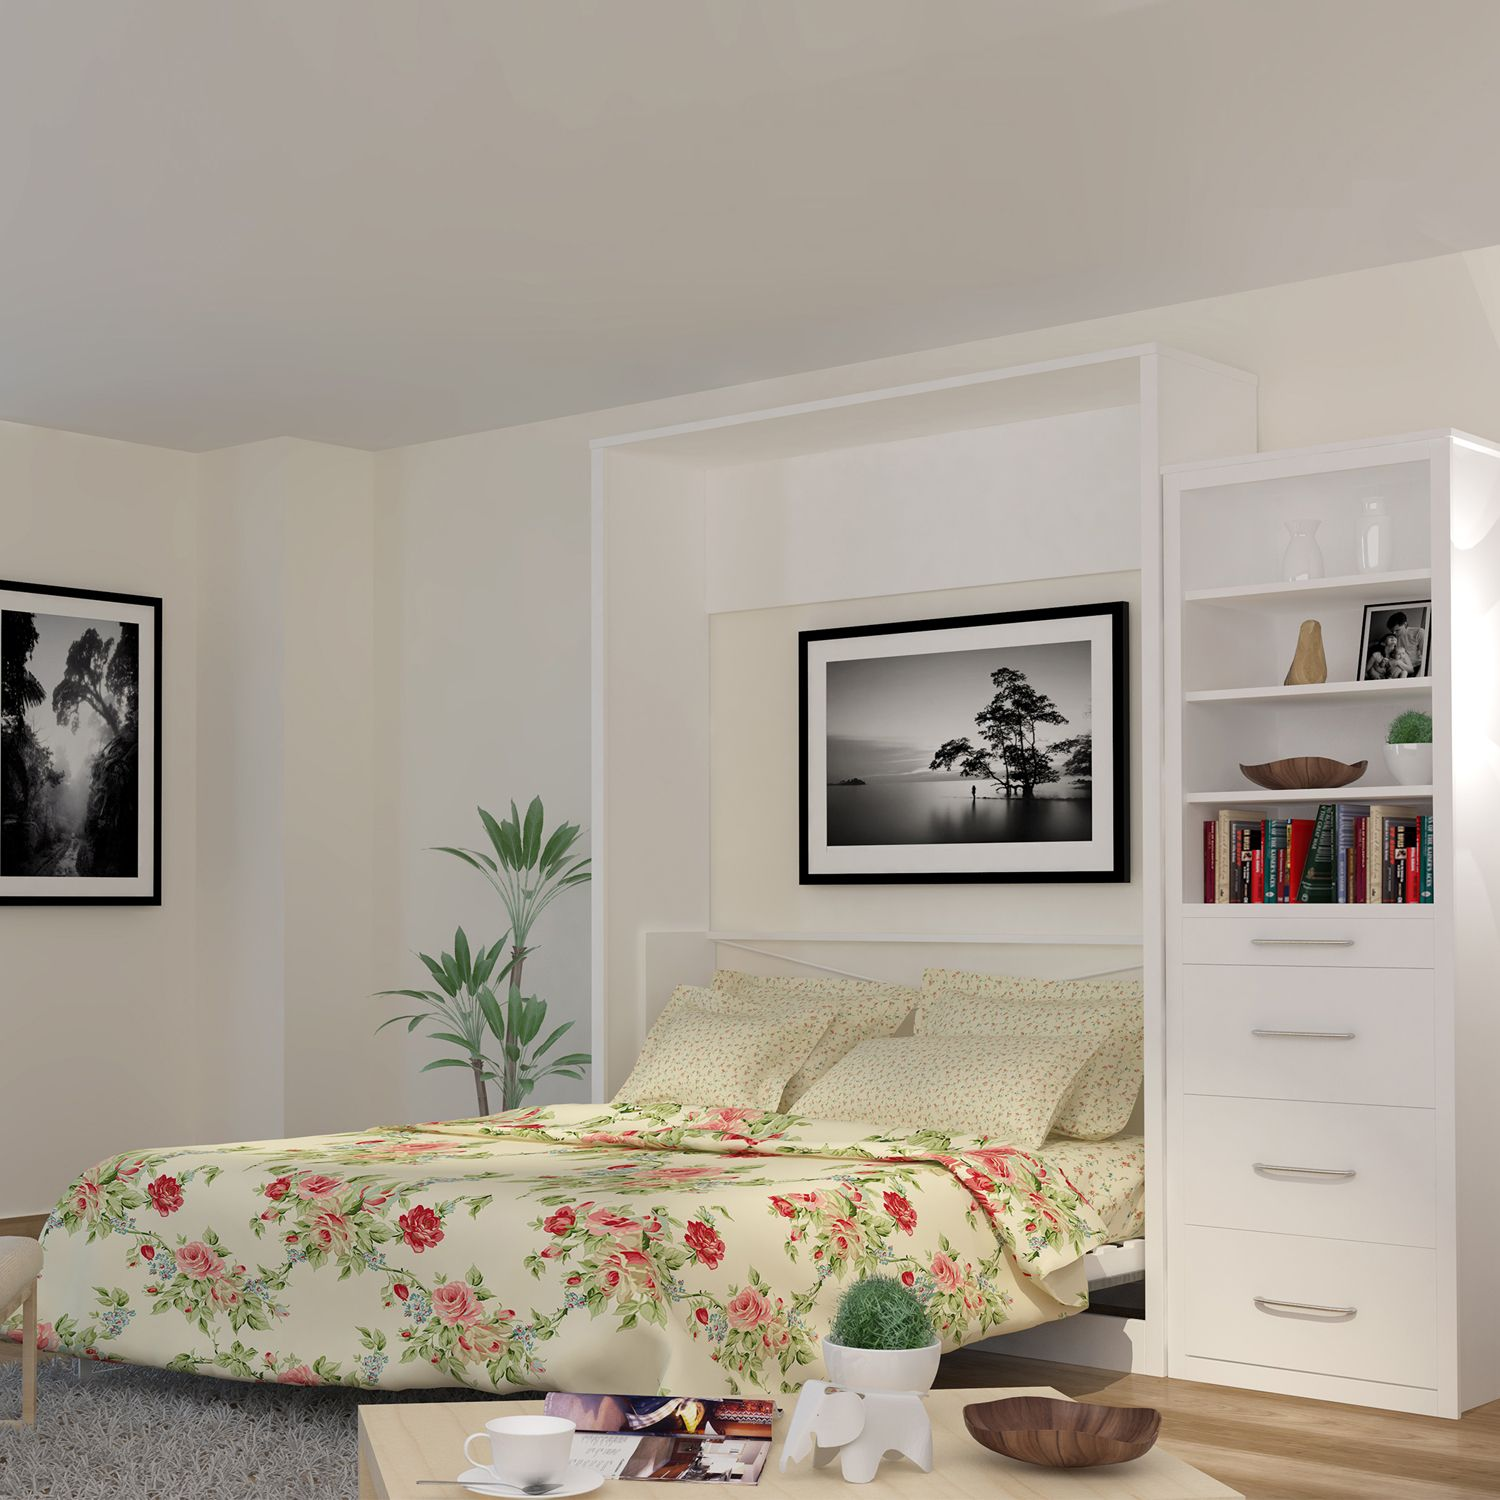 Leto muro alexa anthracite queen wall bed alex10pq wh an larger image 1 2 3 amipublicfo Images